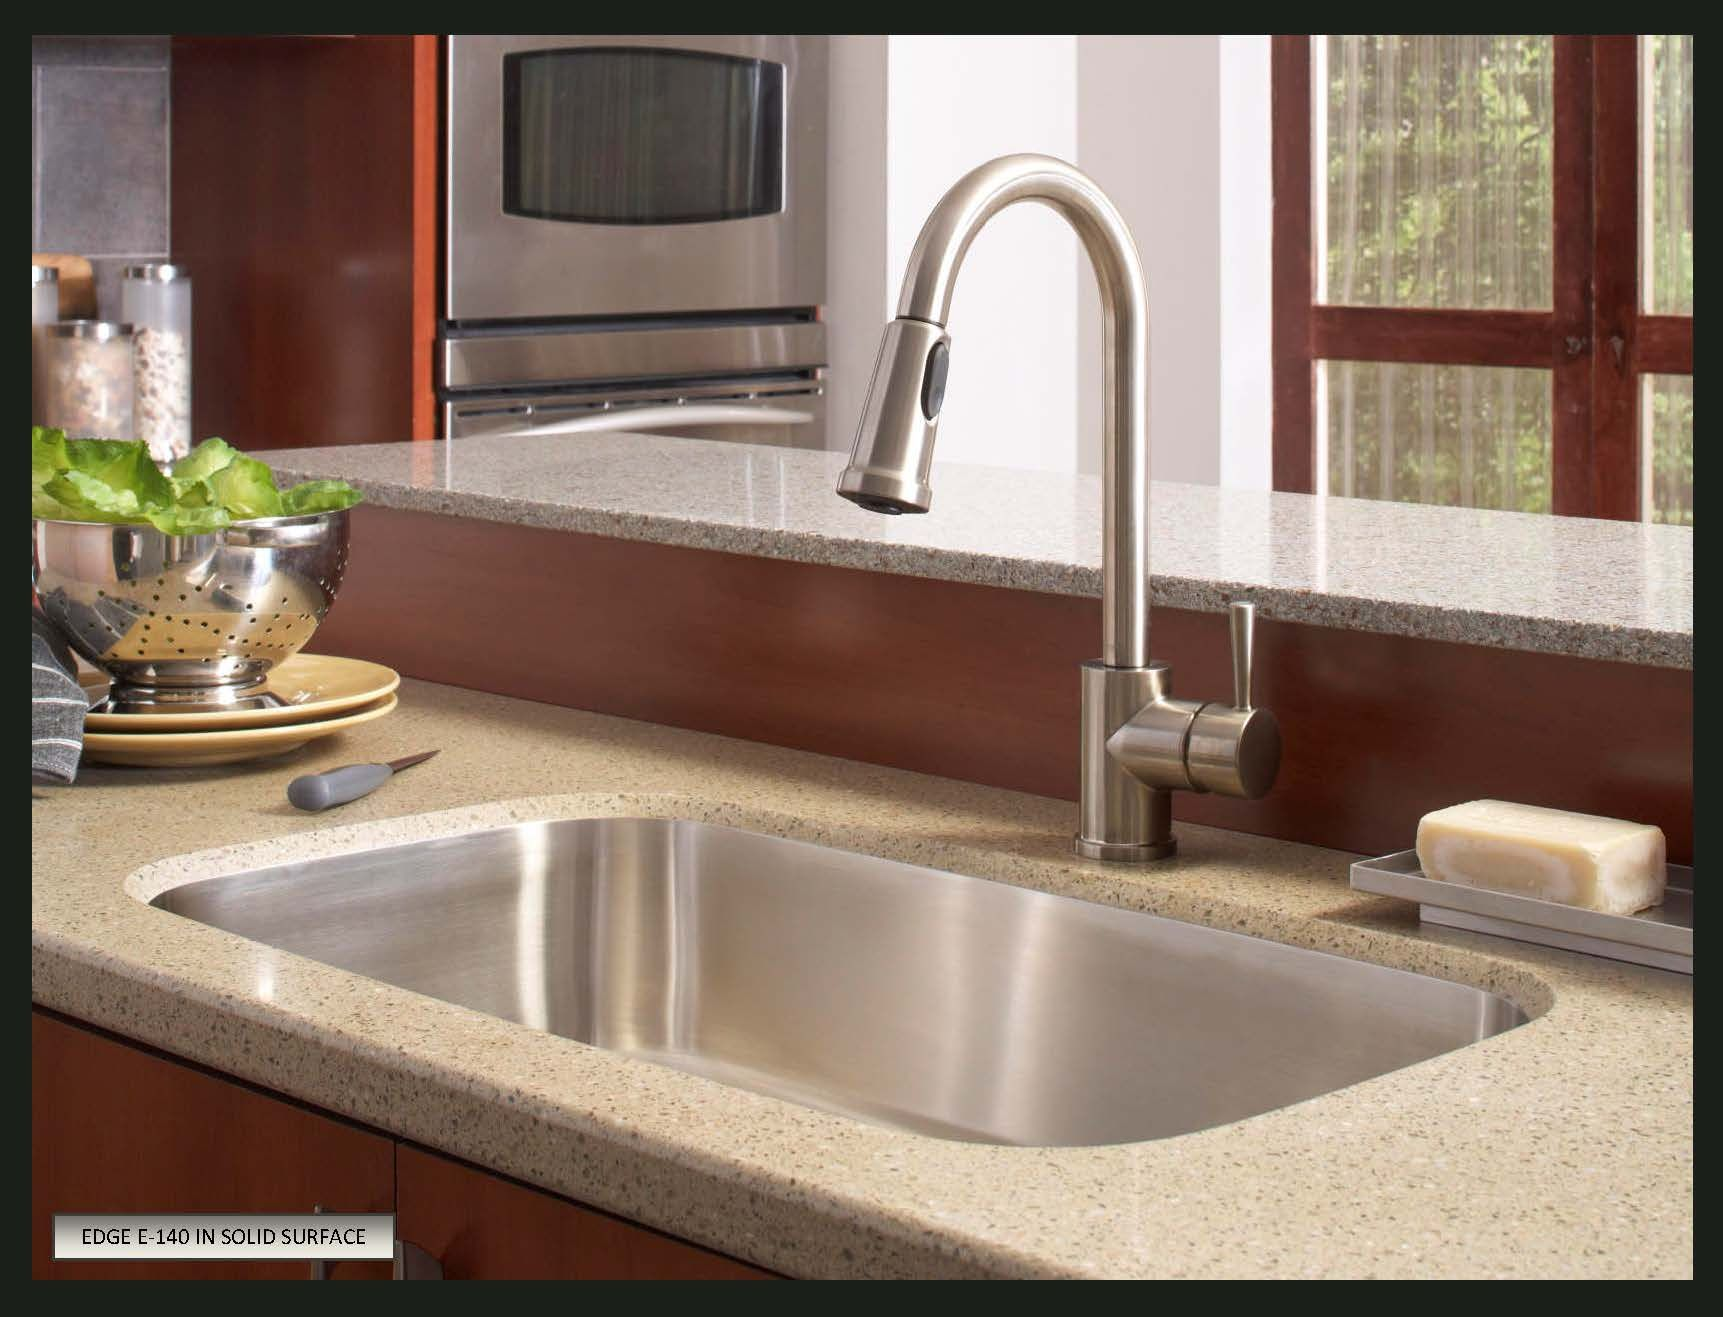 Stainless Sink In A Corian Countertop Google Search Decorating Pinterest Sinks And